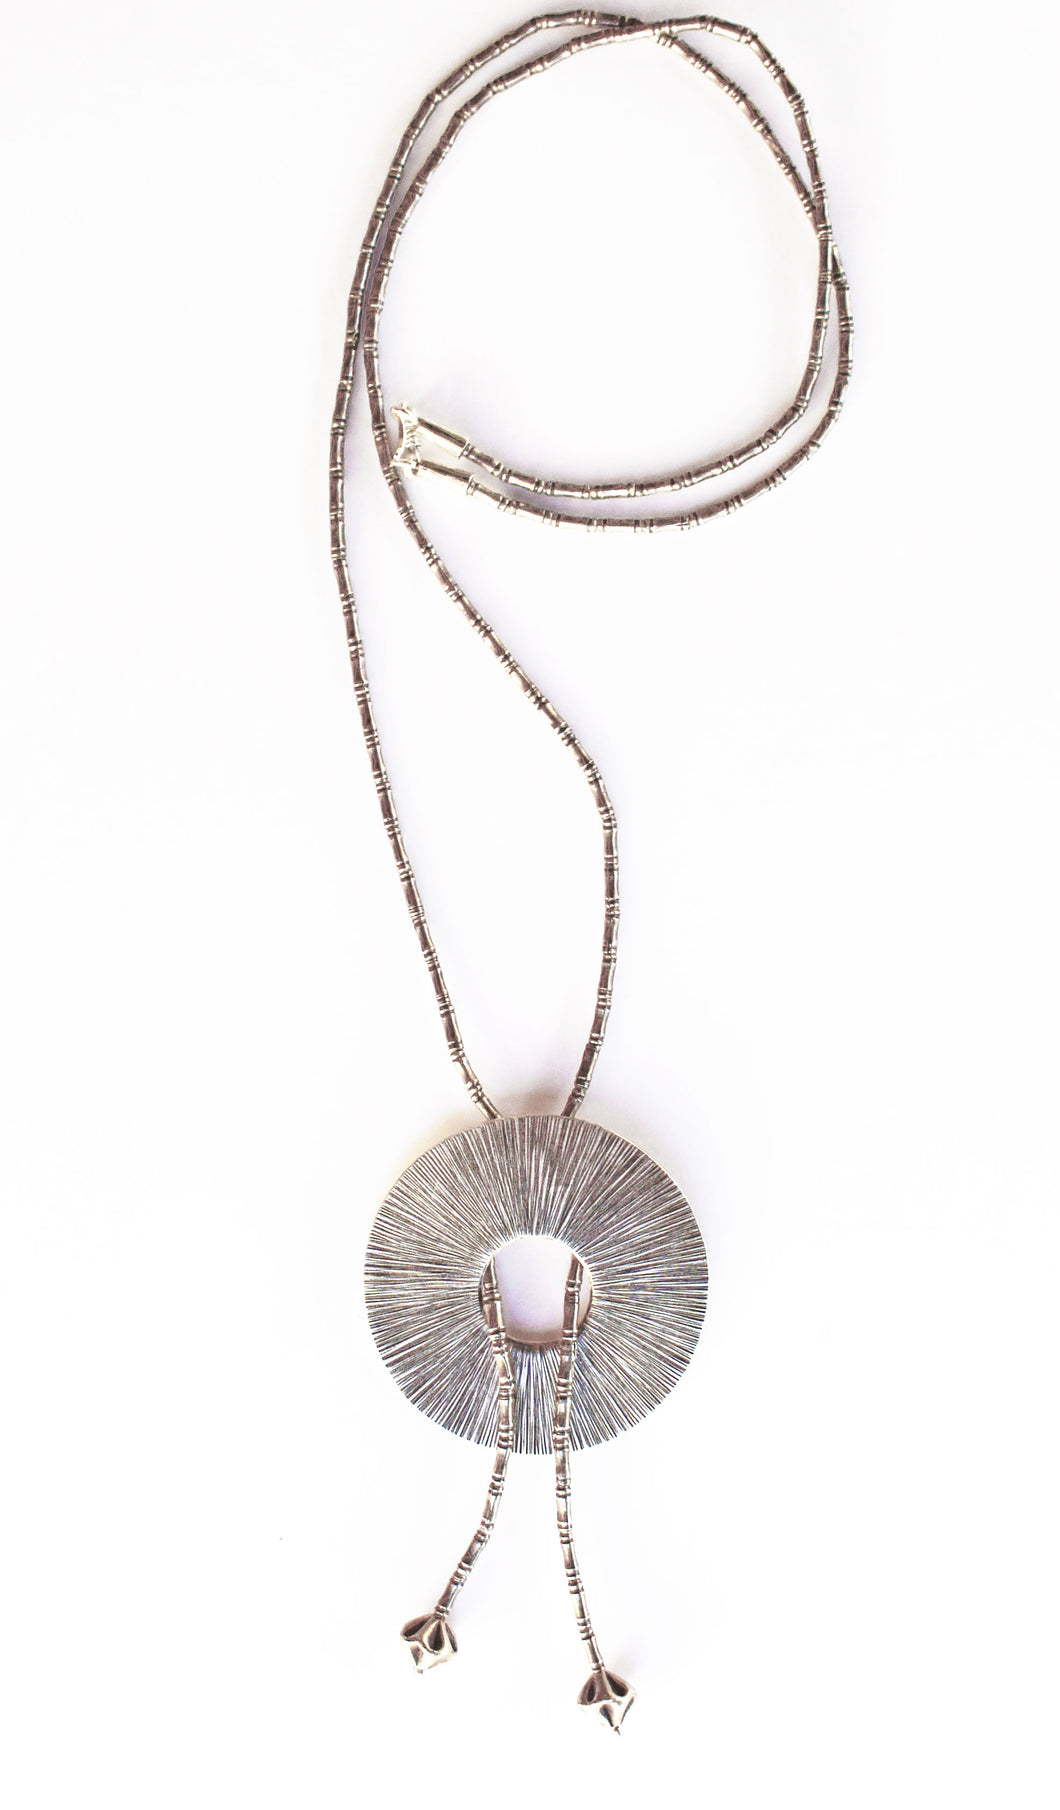 Hill Tribe Bolo Necklace, Pure Silver